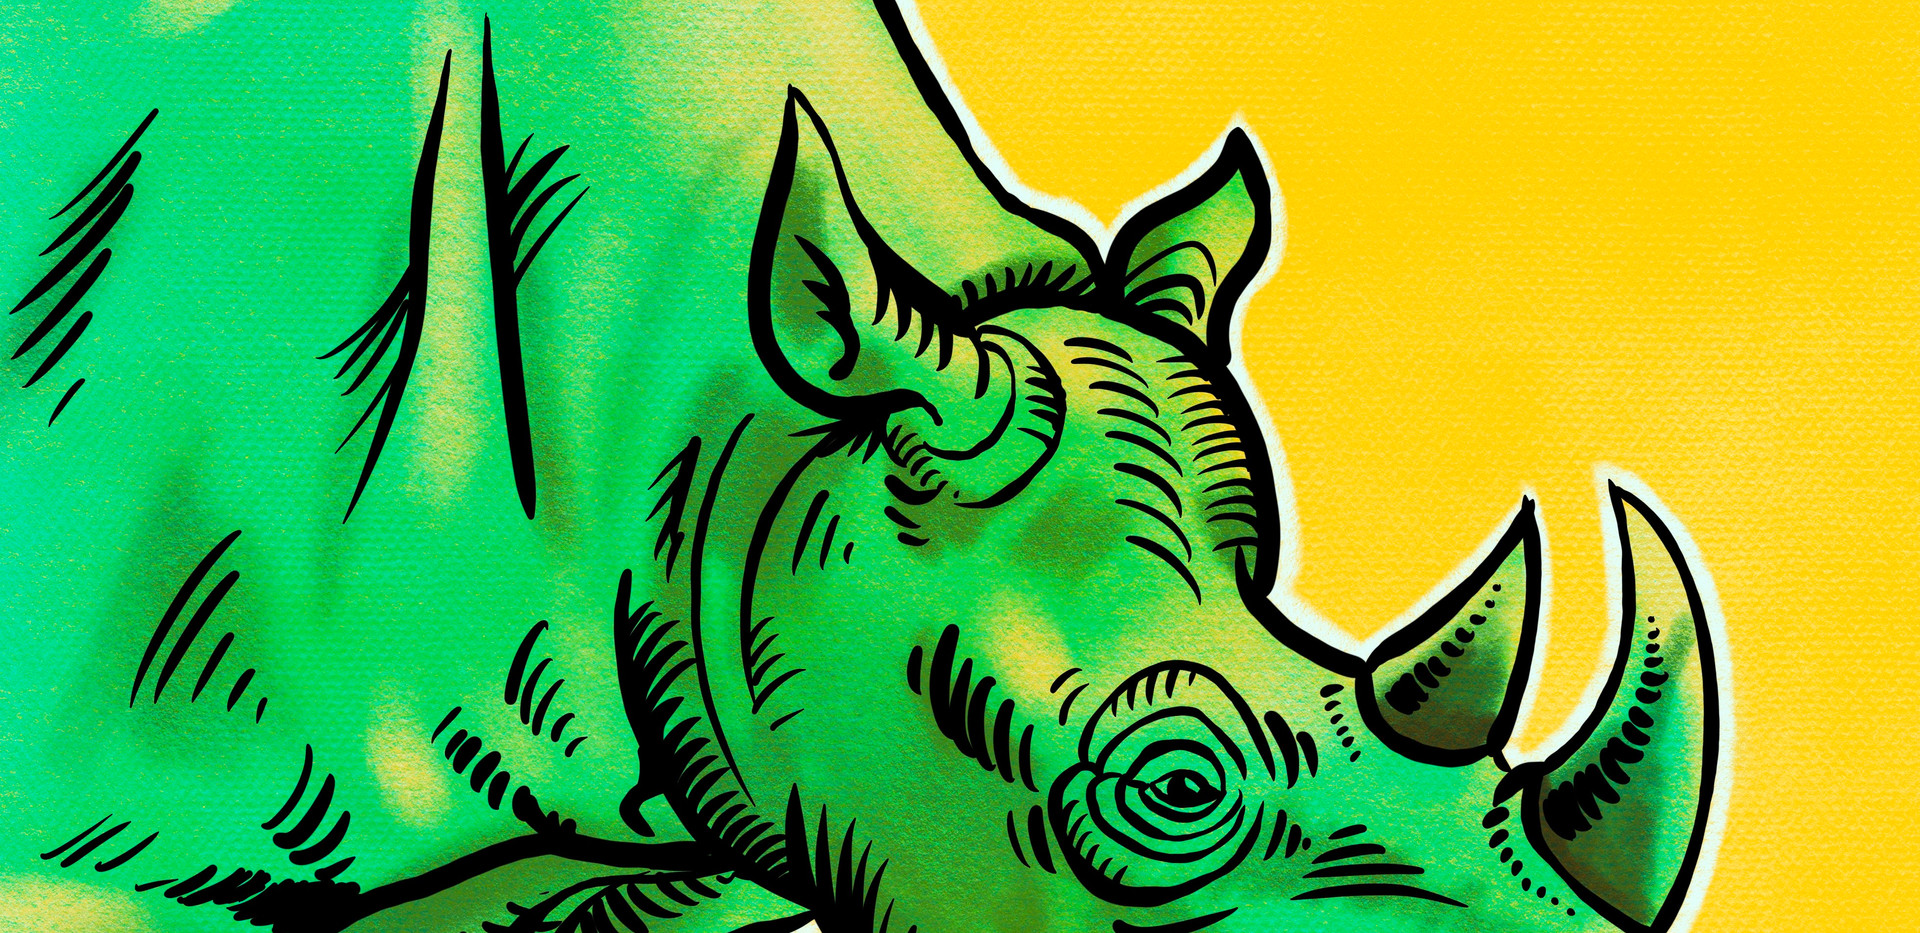 Joseph Grice Rhino Digital Illustration